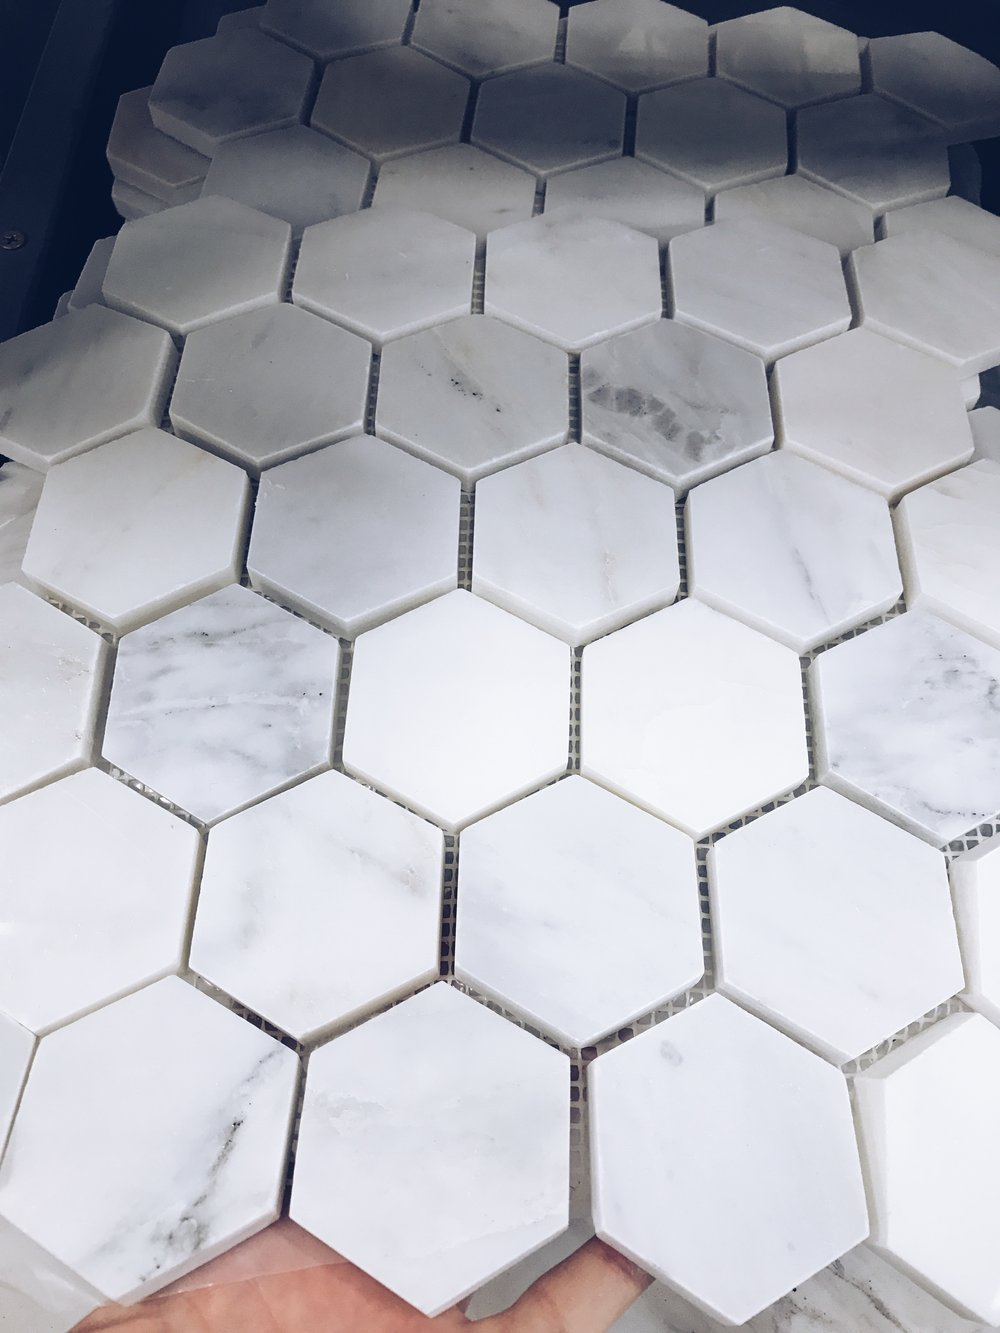 Hexagon Floor Tile in 2 inch pieces.